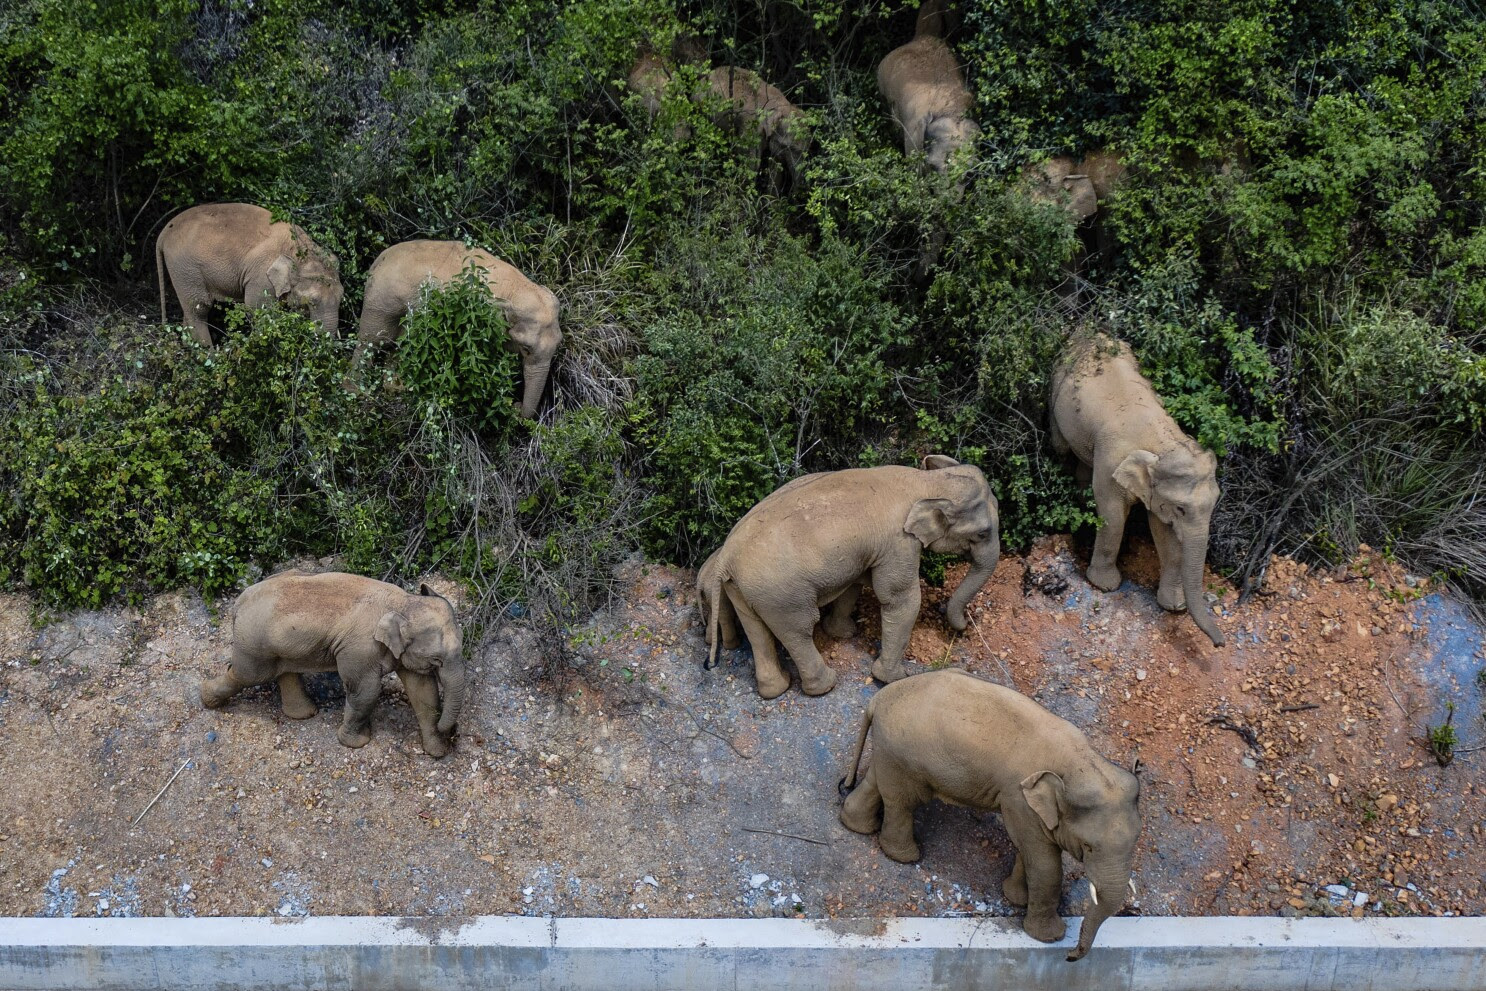 A herd of elephants in China